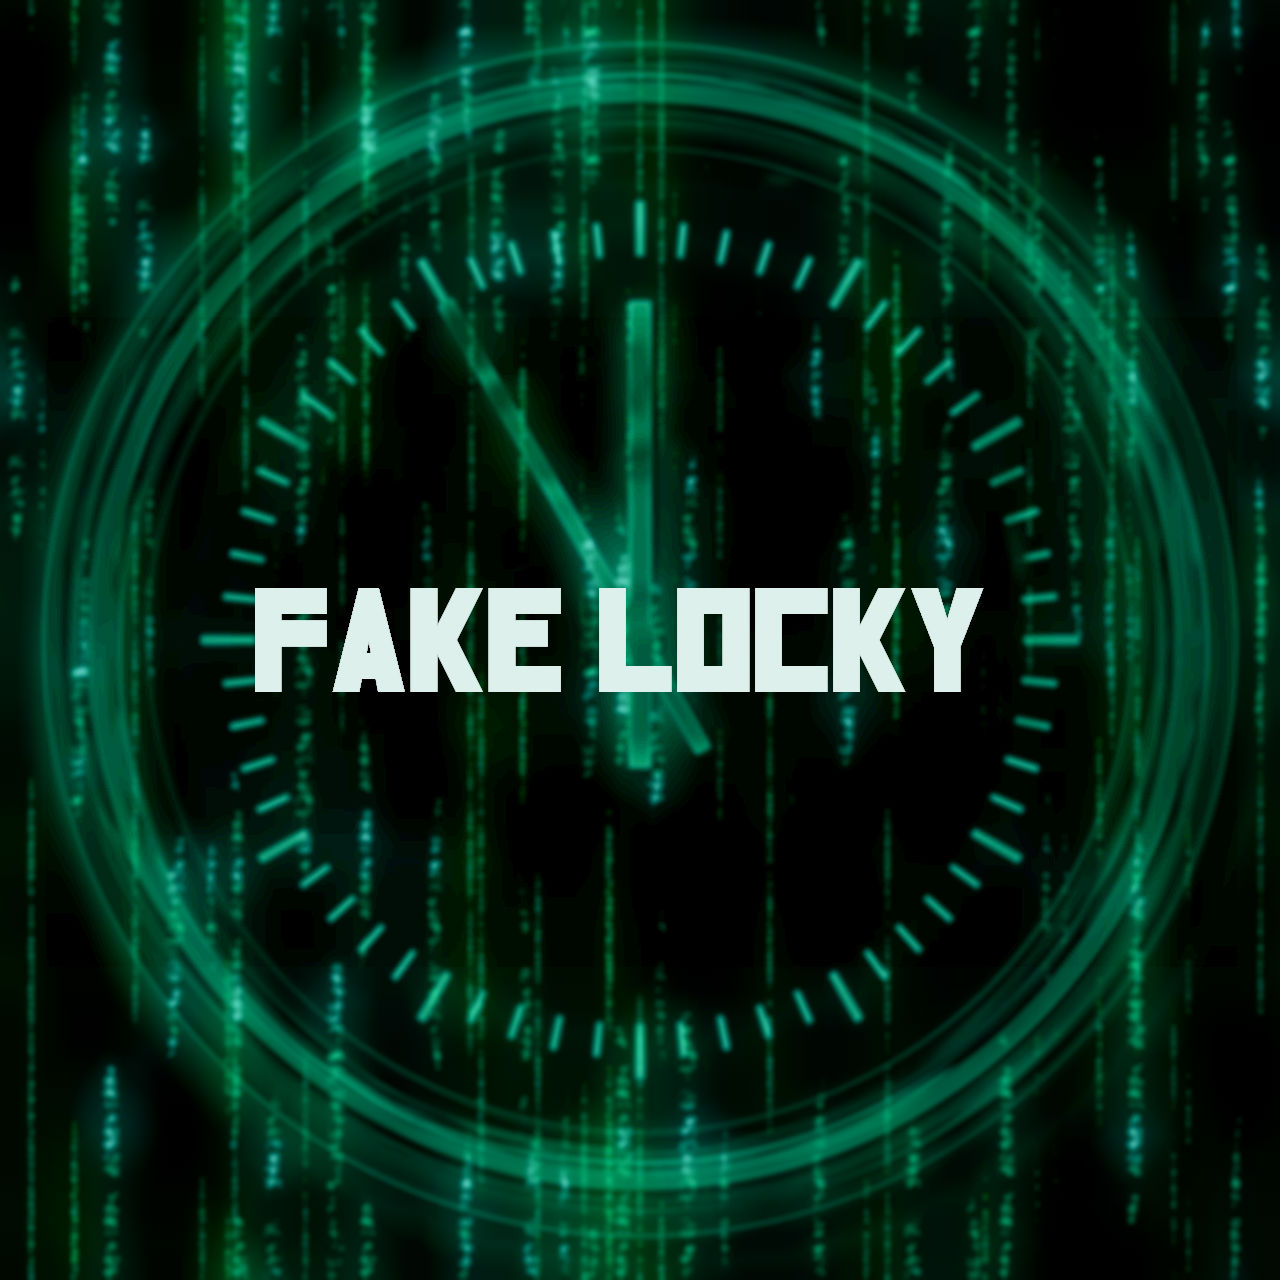 Fake Locky Ransomware Virus (Removal Steps and Protection Updates)